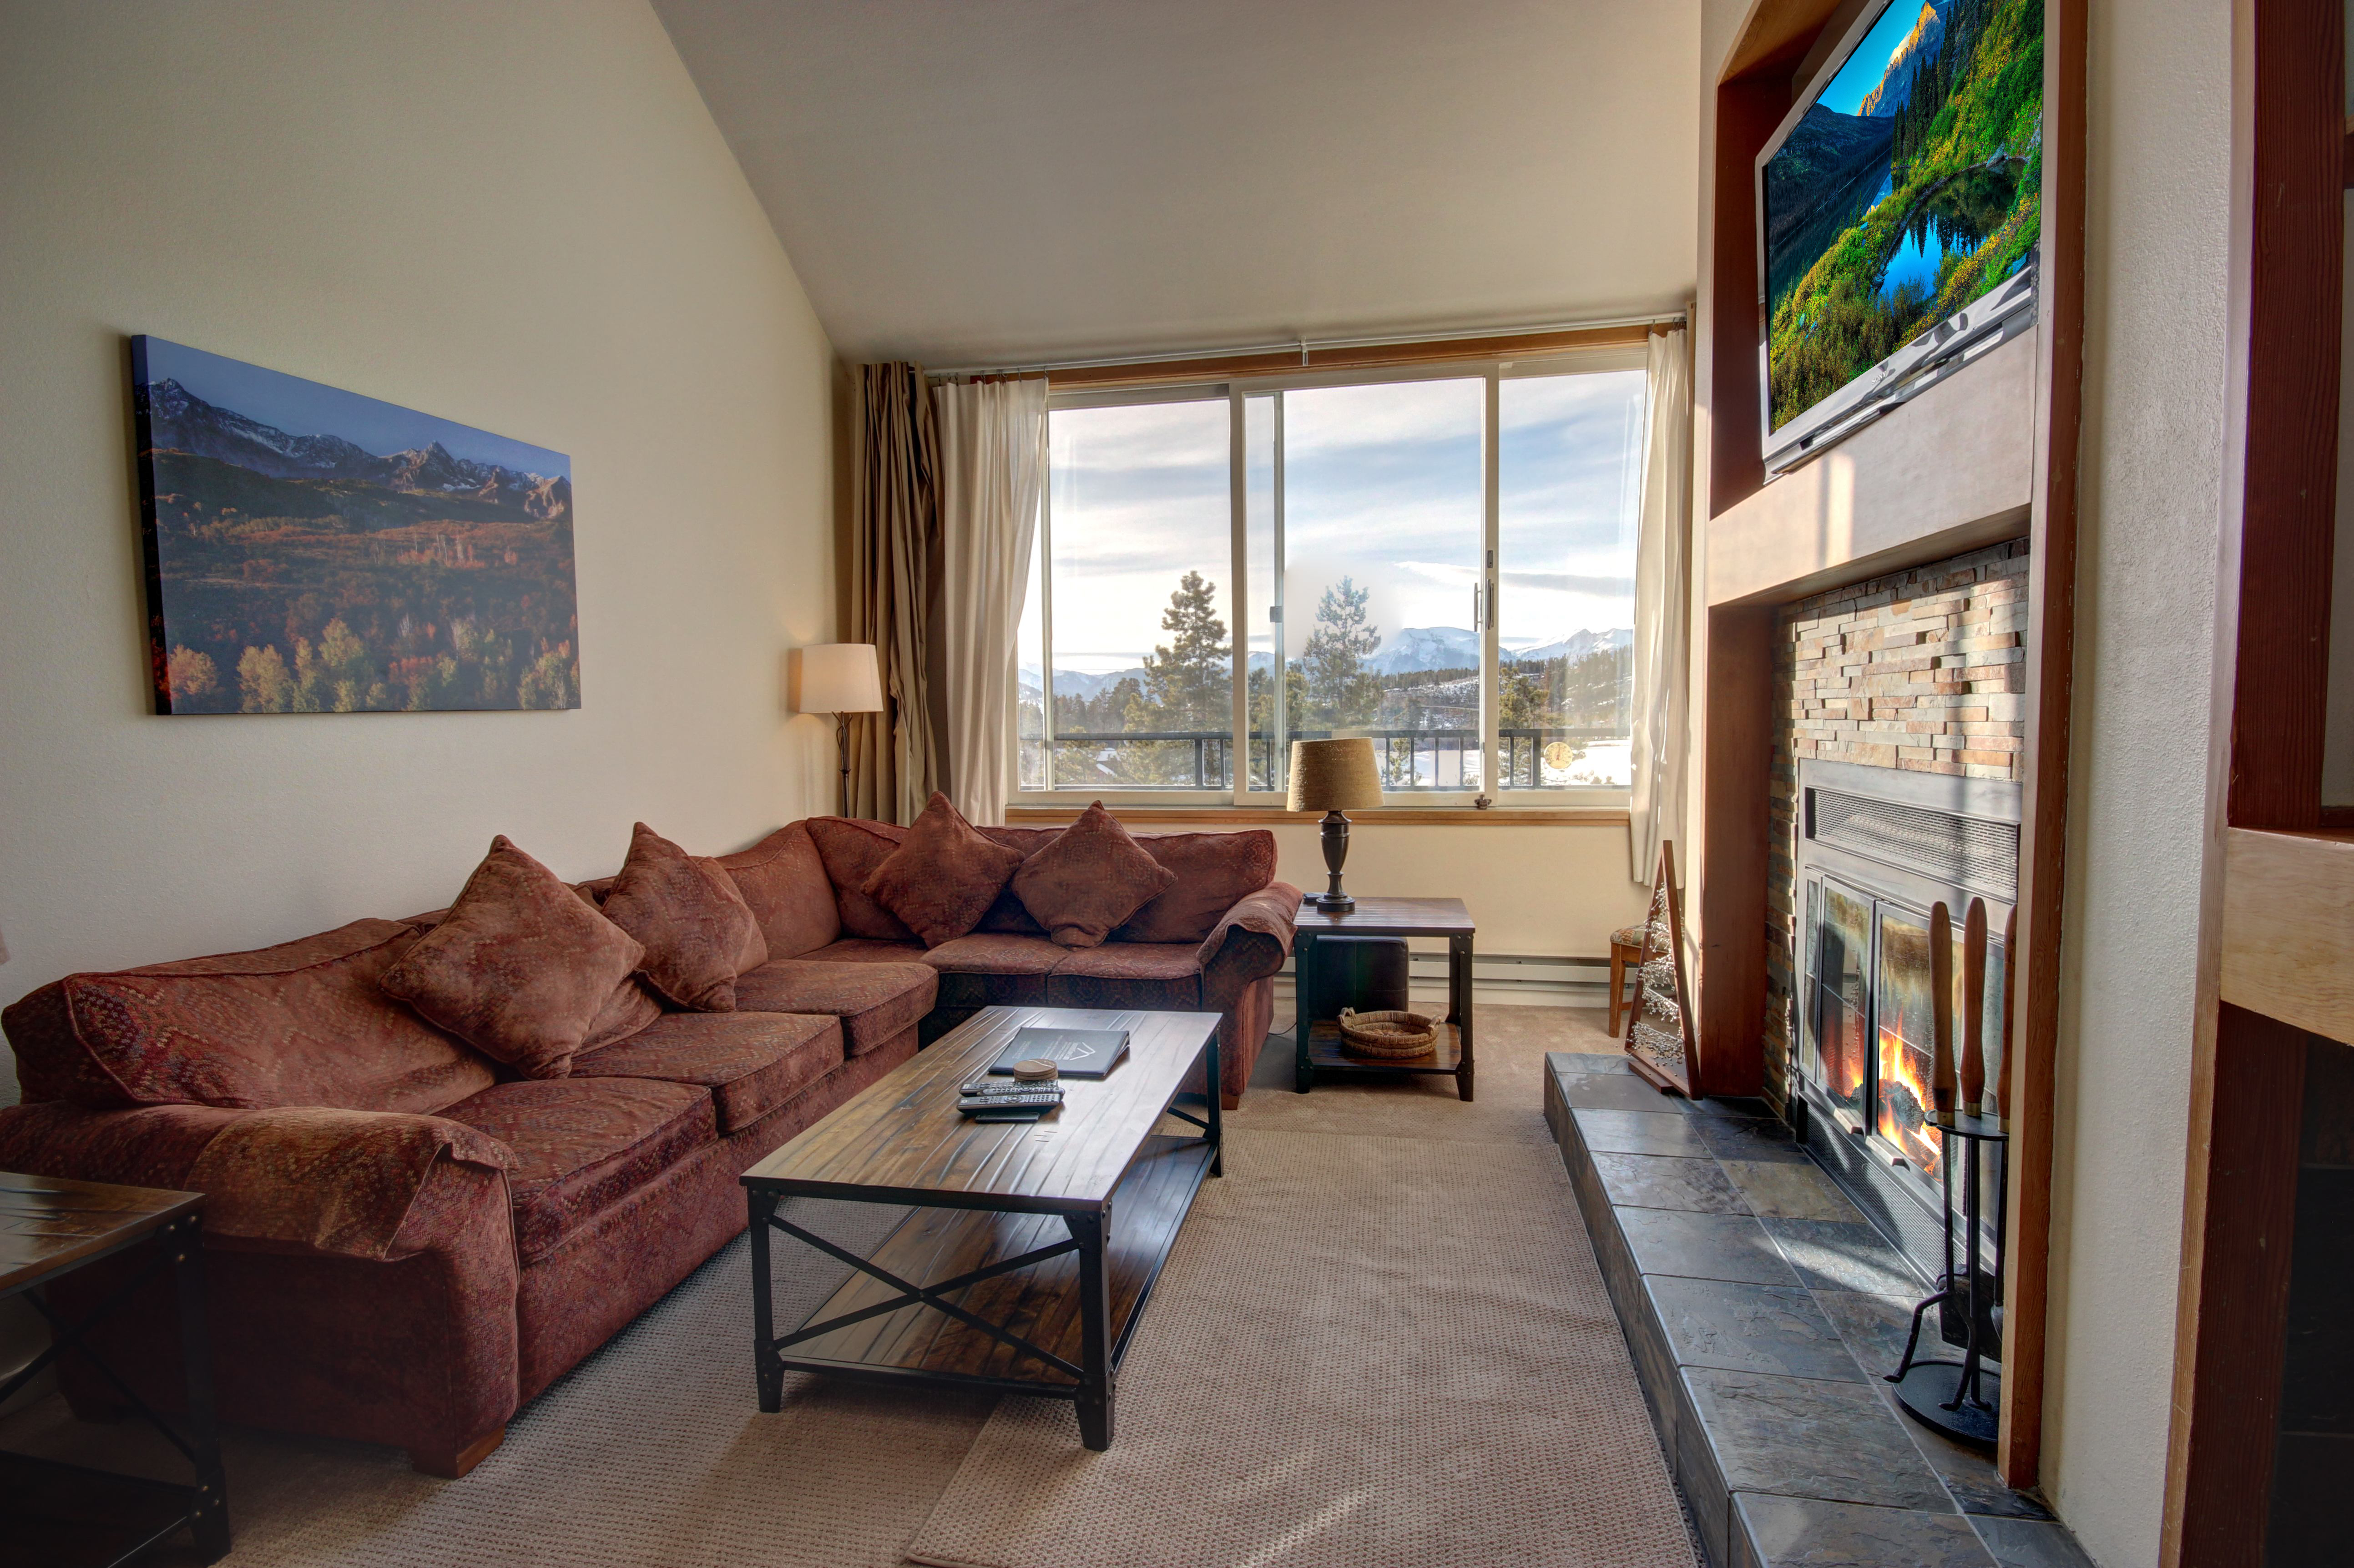 Relax on comfortable couches with an amazing view